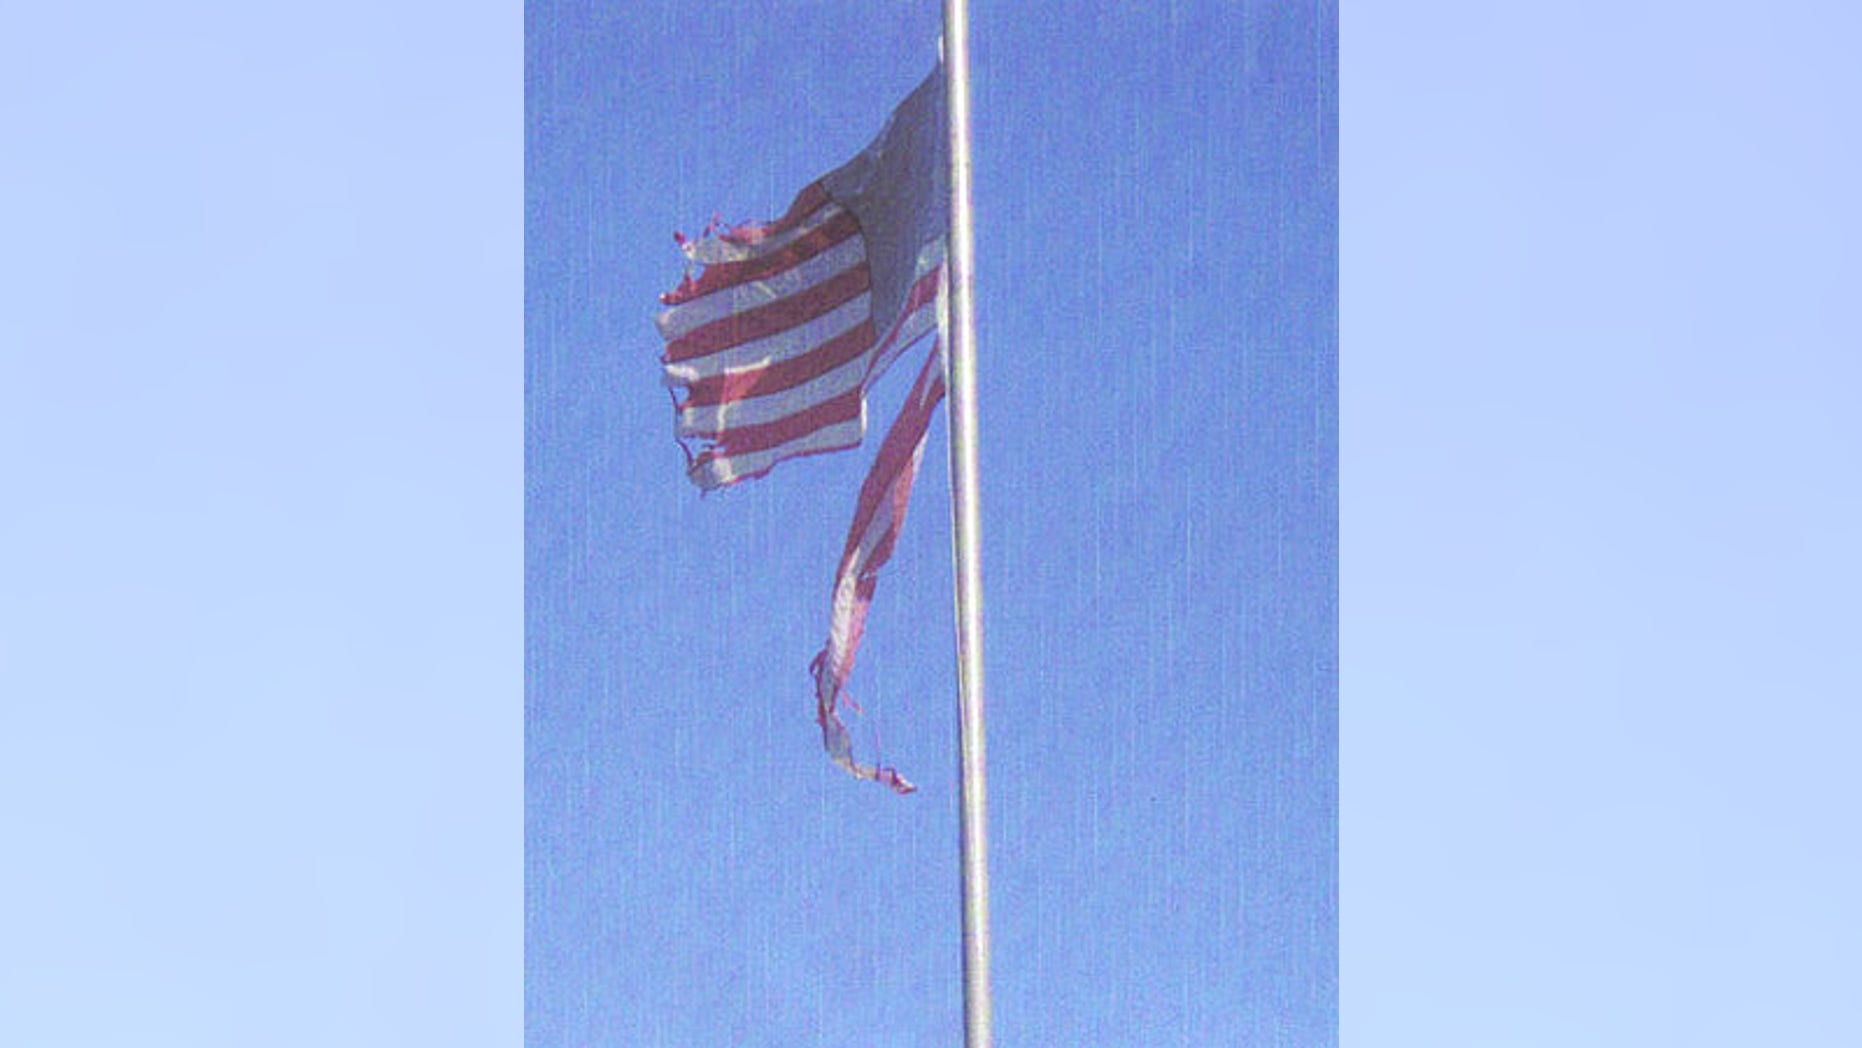 Despite calls by neighbors, this weathered U.S. flag won't come down until Corporal Paul Haros, U.S. Army Reserves, returns to California.